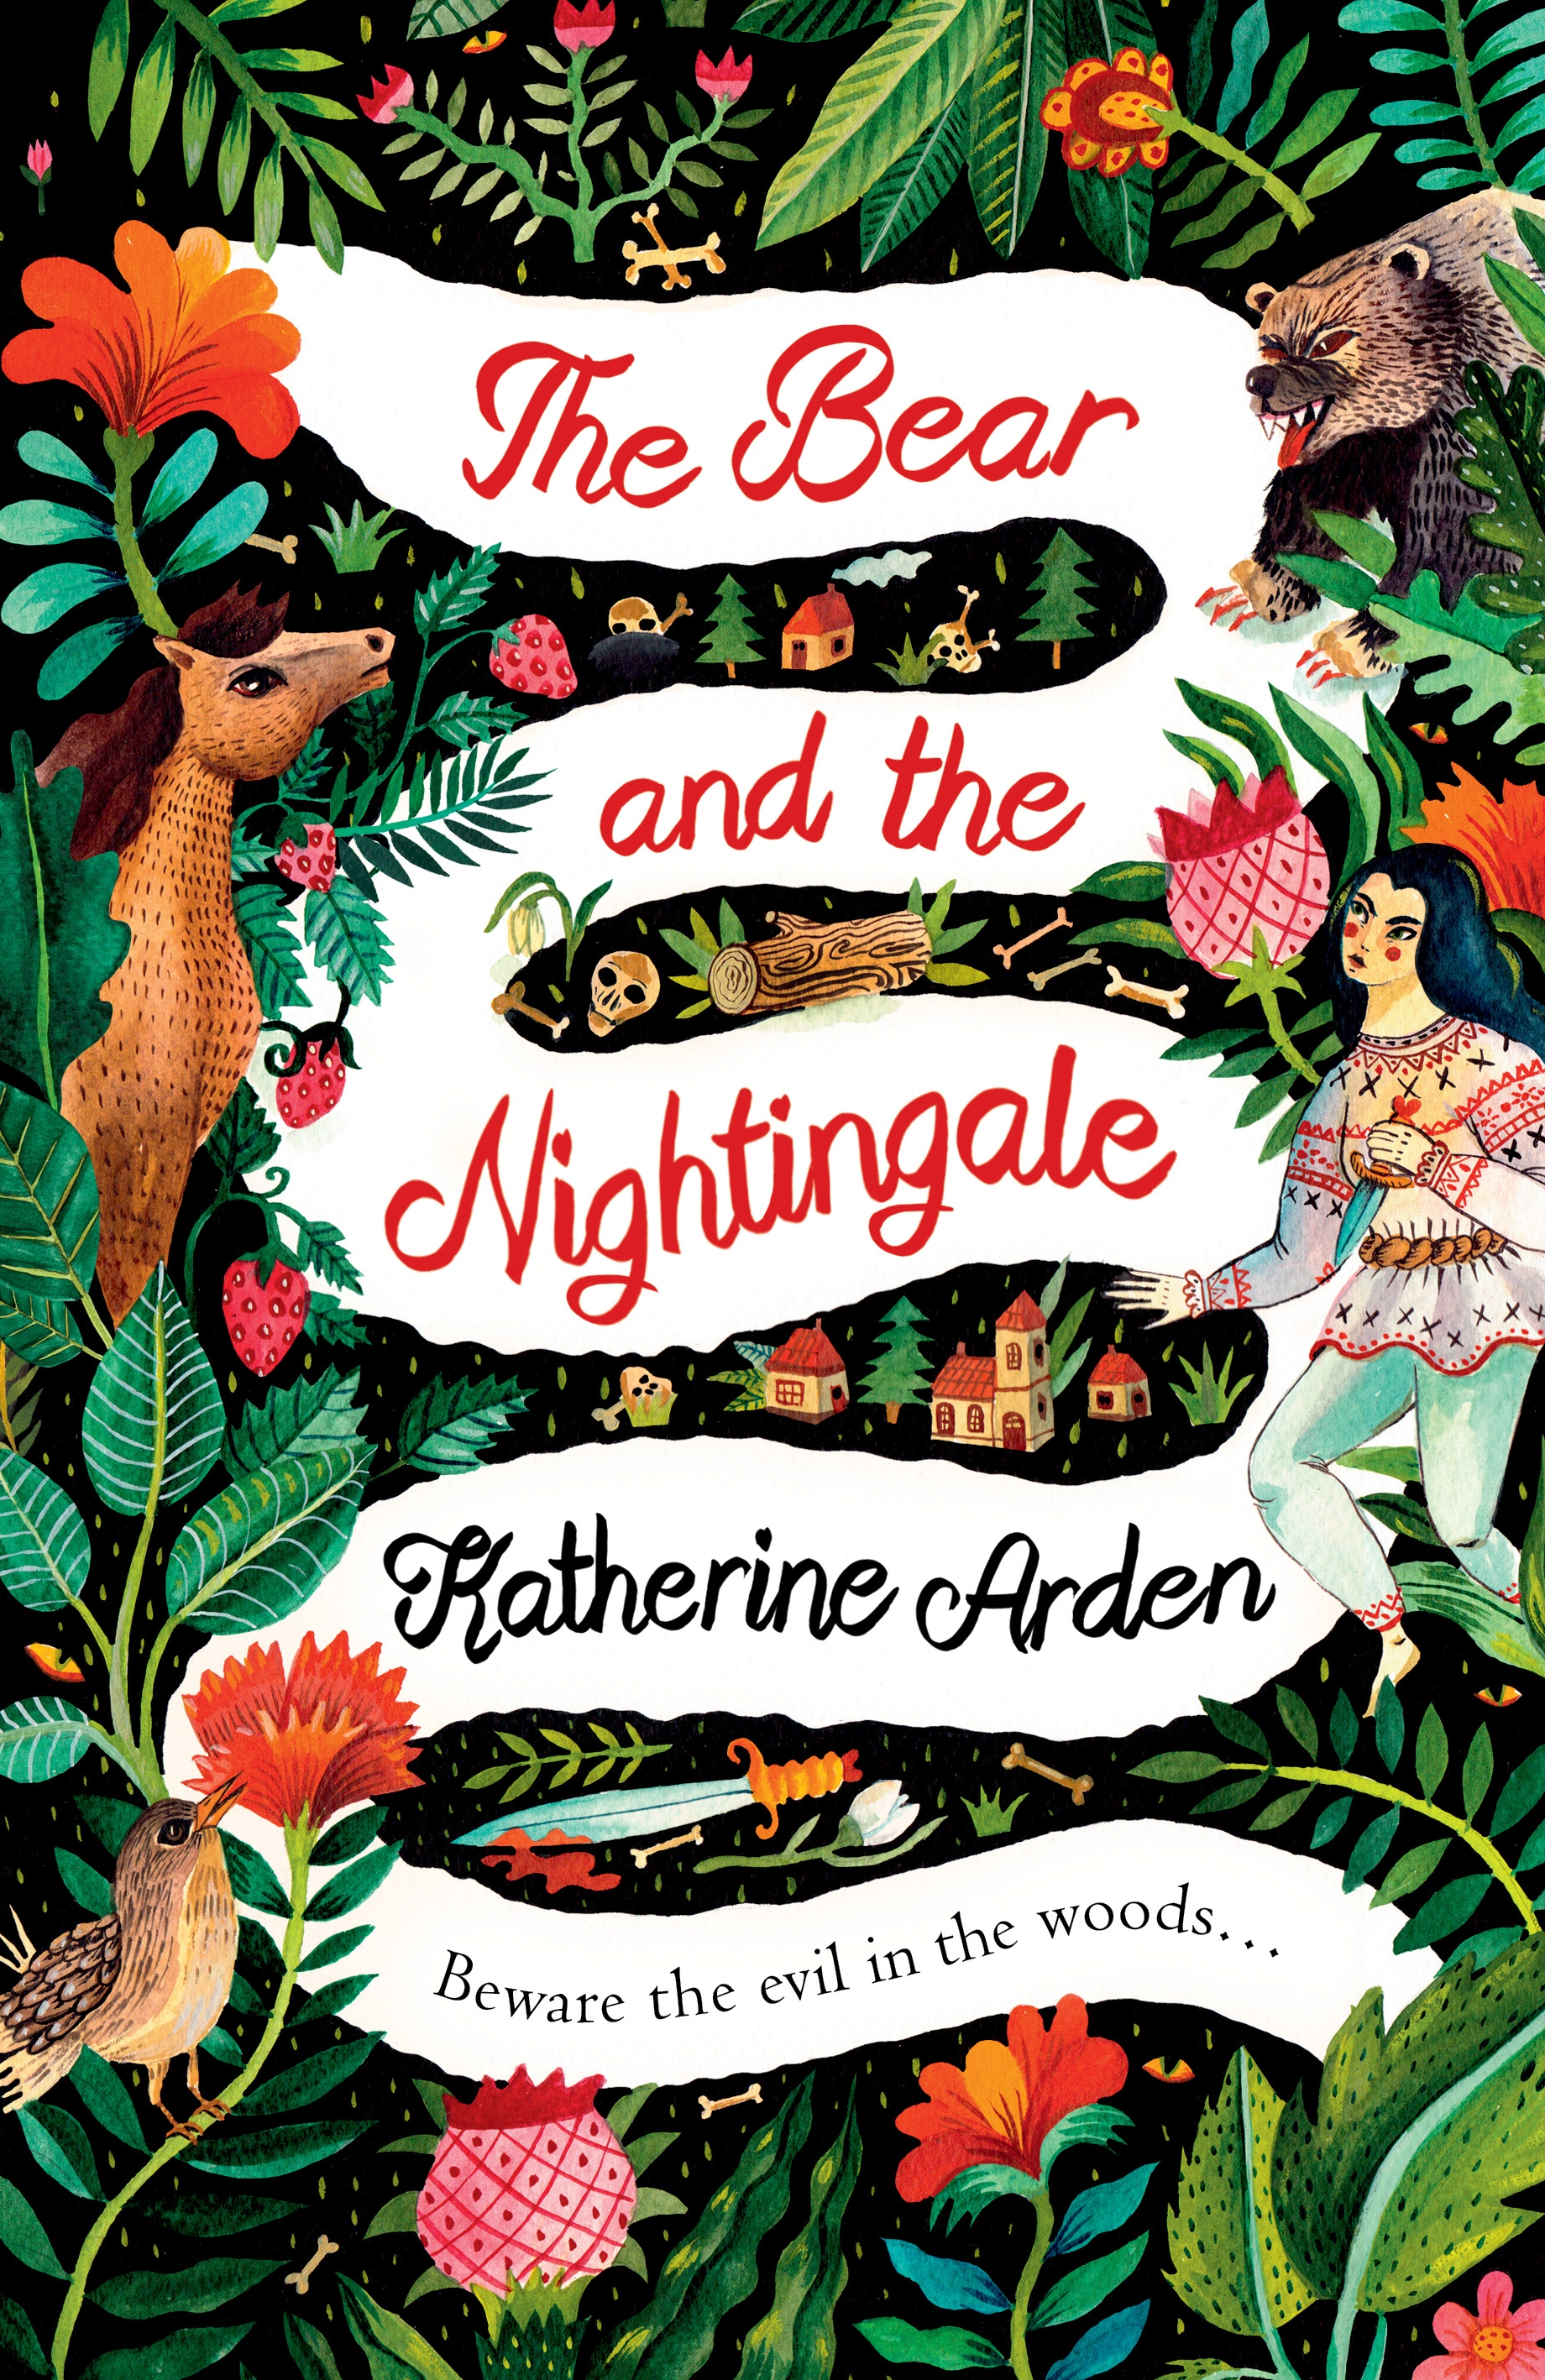 The Bear and The Nightingale by Katherine Arden, ISBN: 9781785031045